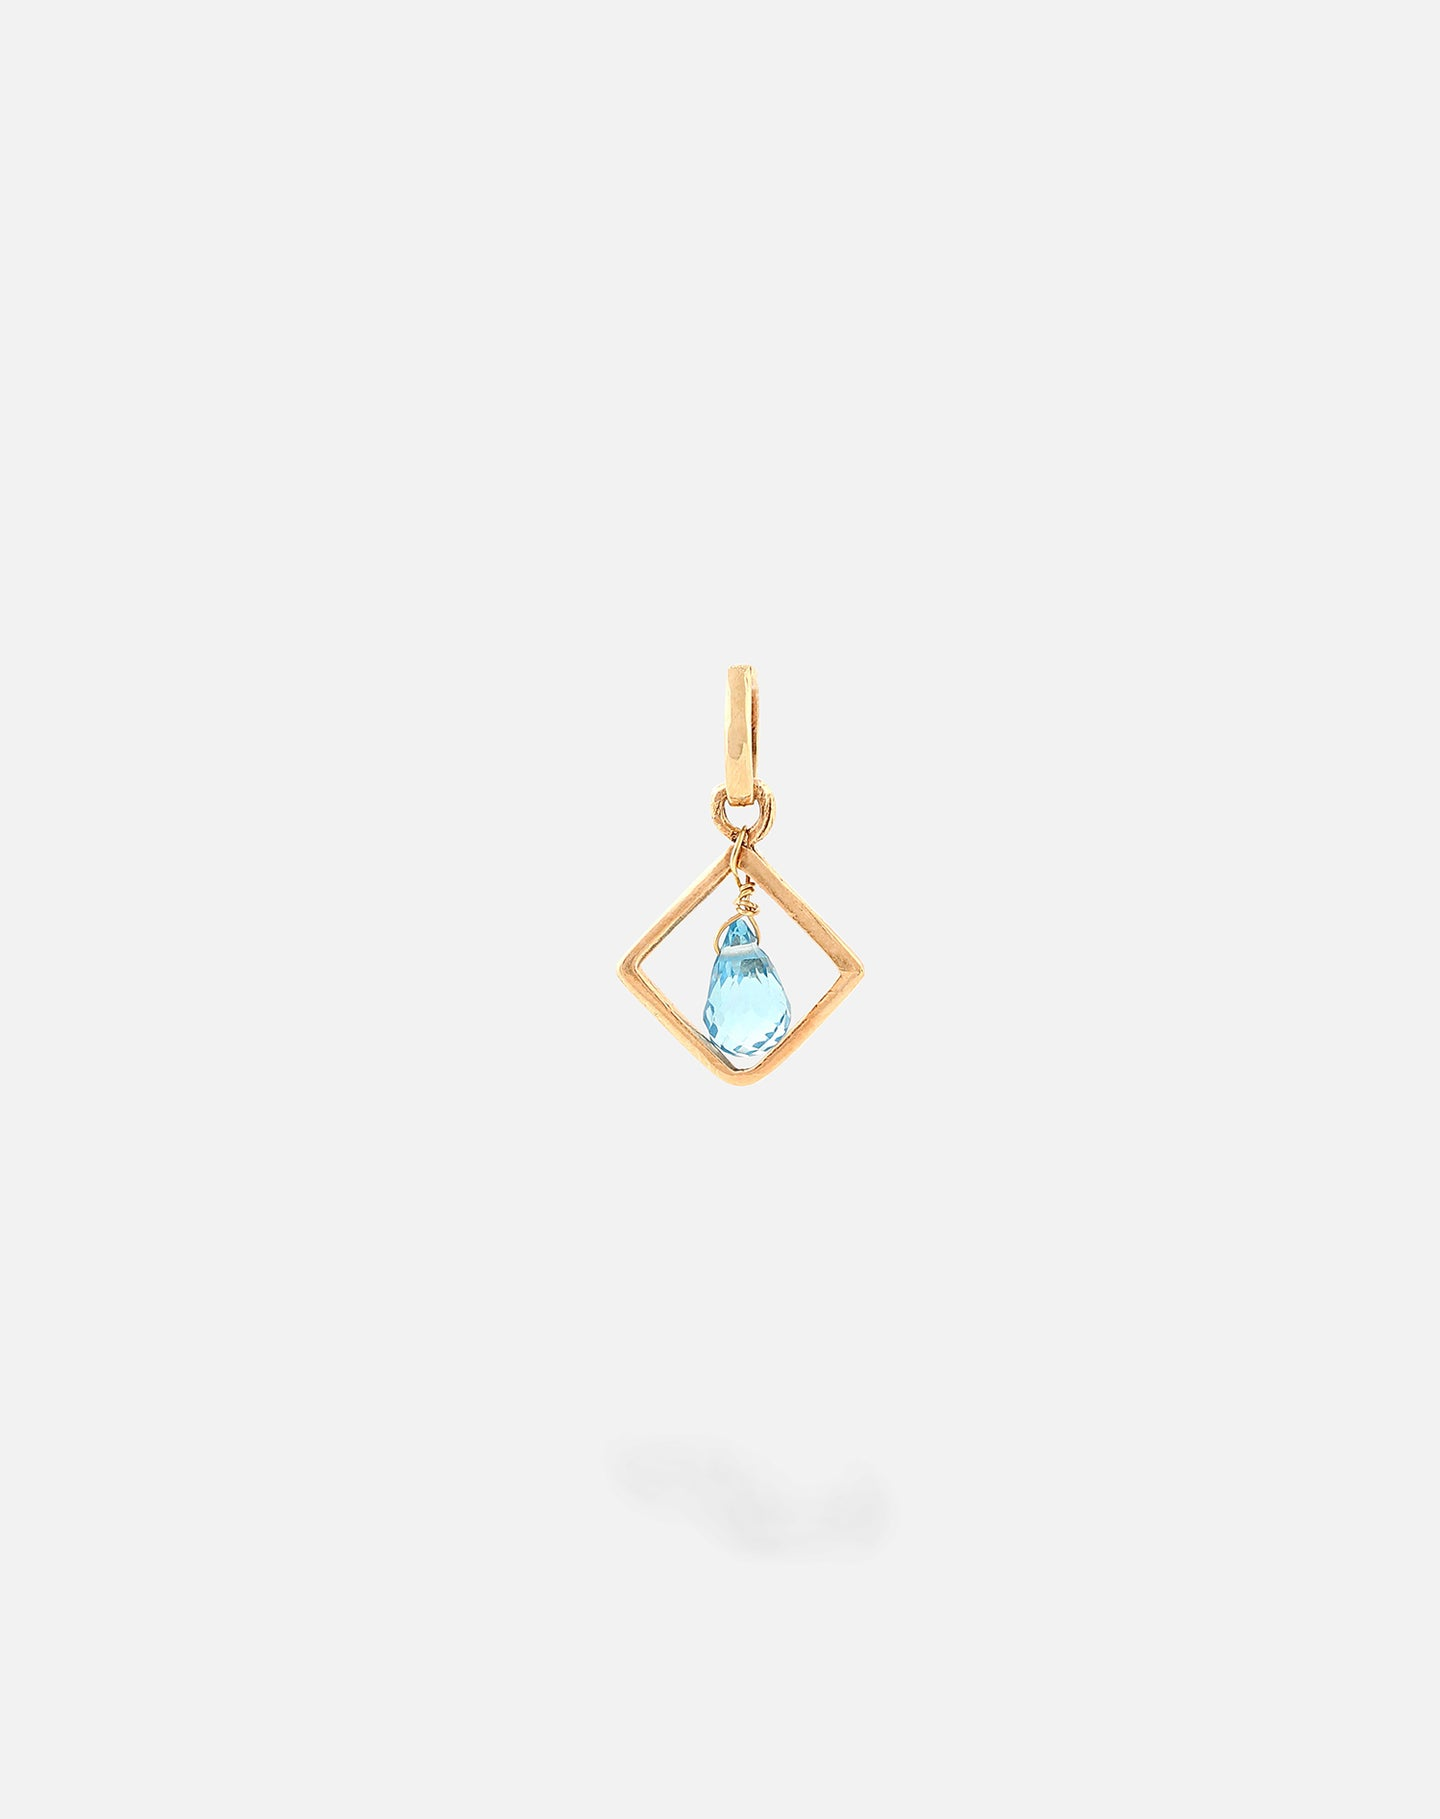 Blue Topaz Colored Stone Charm